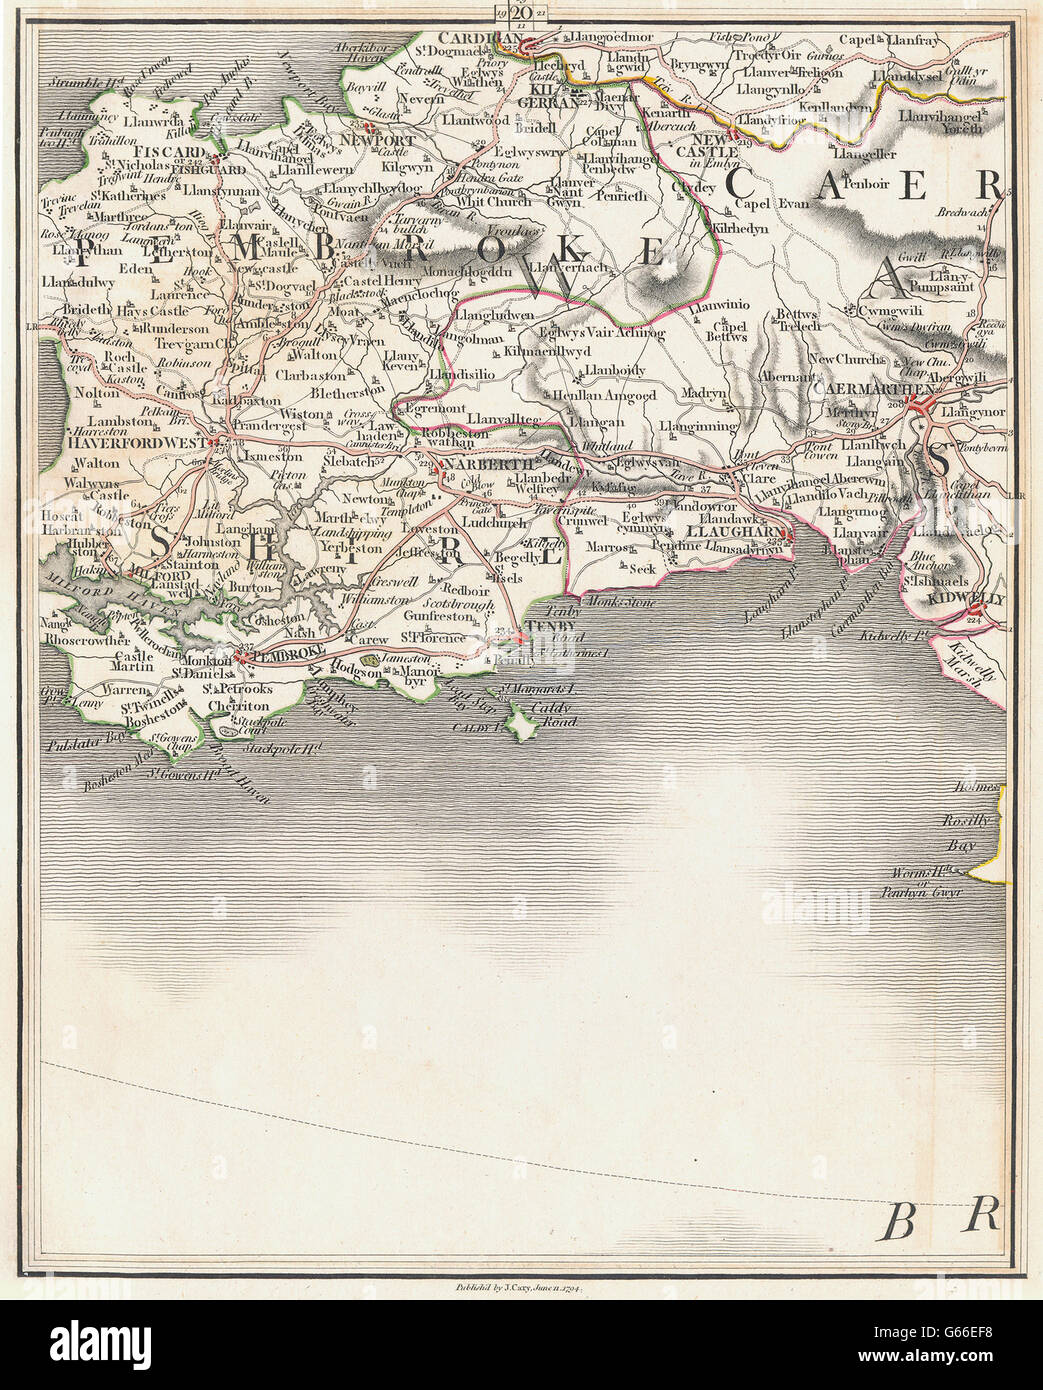 SW WALES:Cardigan Haverfordwest Tenby Pembroke Carmarthen Milford.CARY, 1794 map - Stock Image